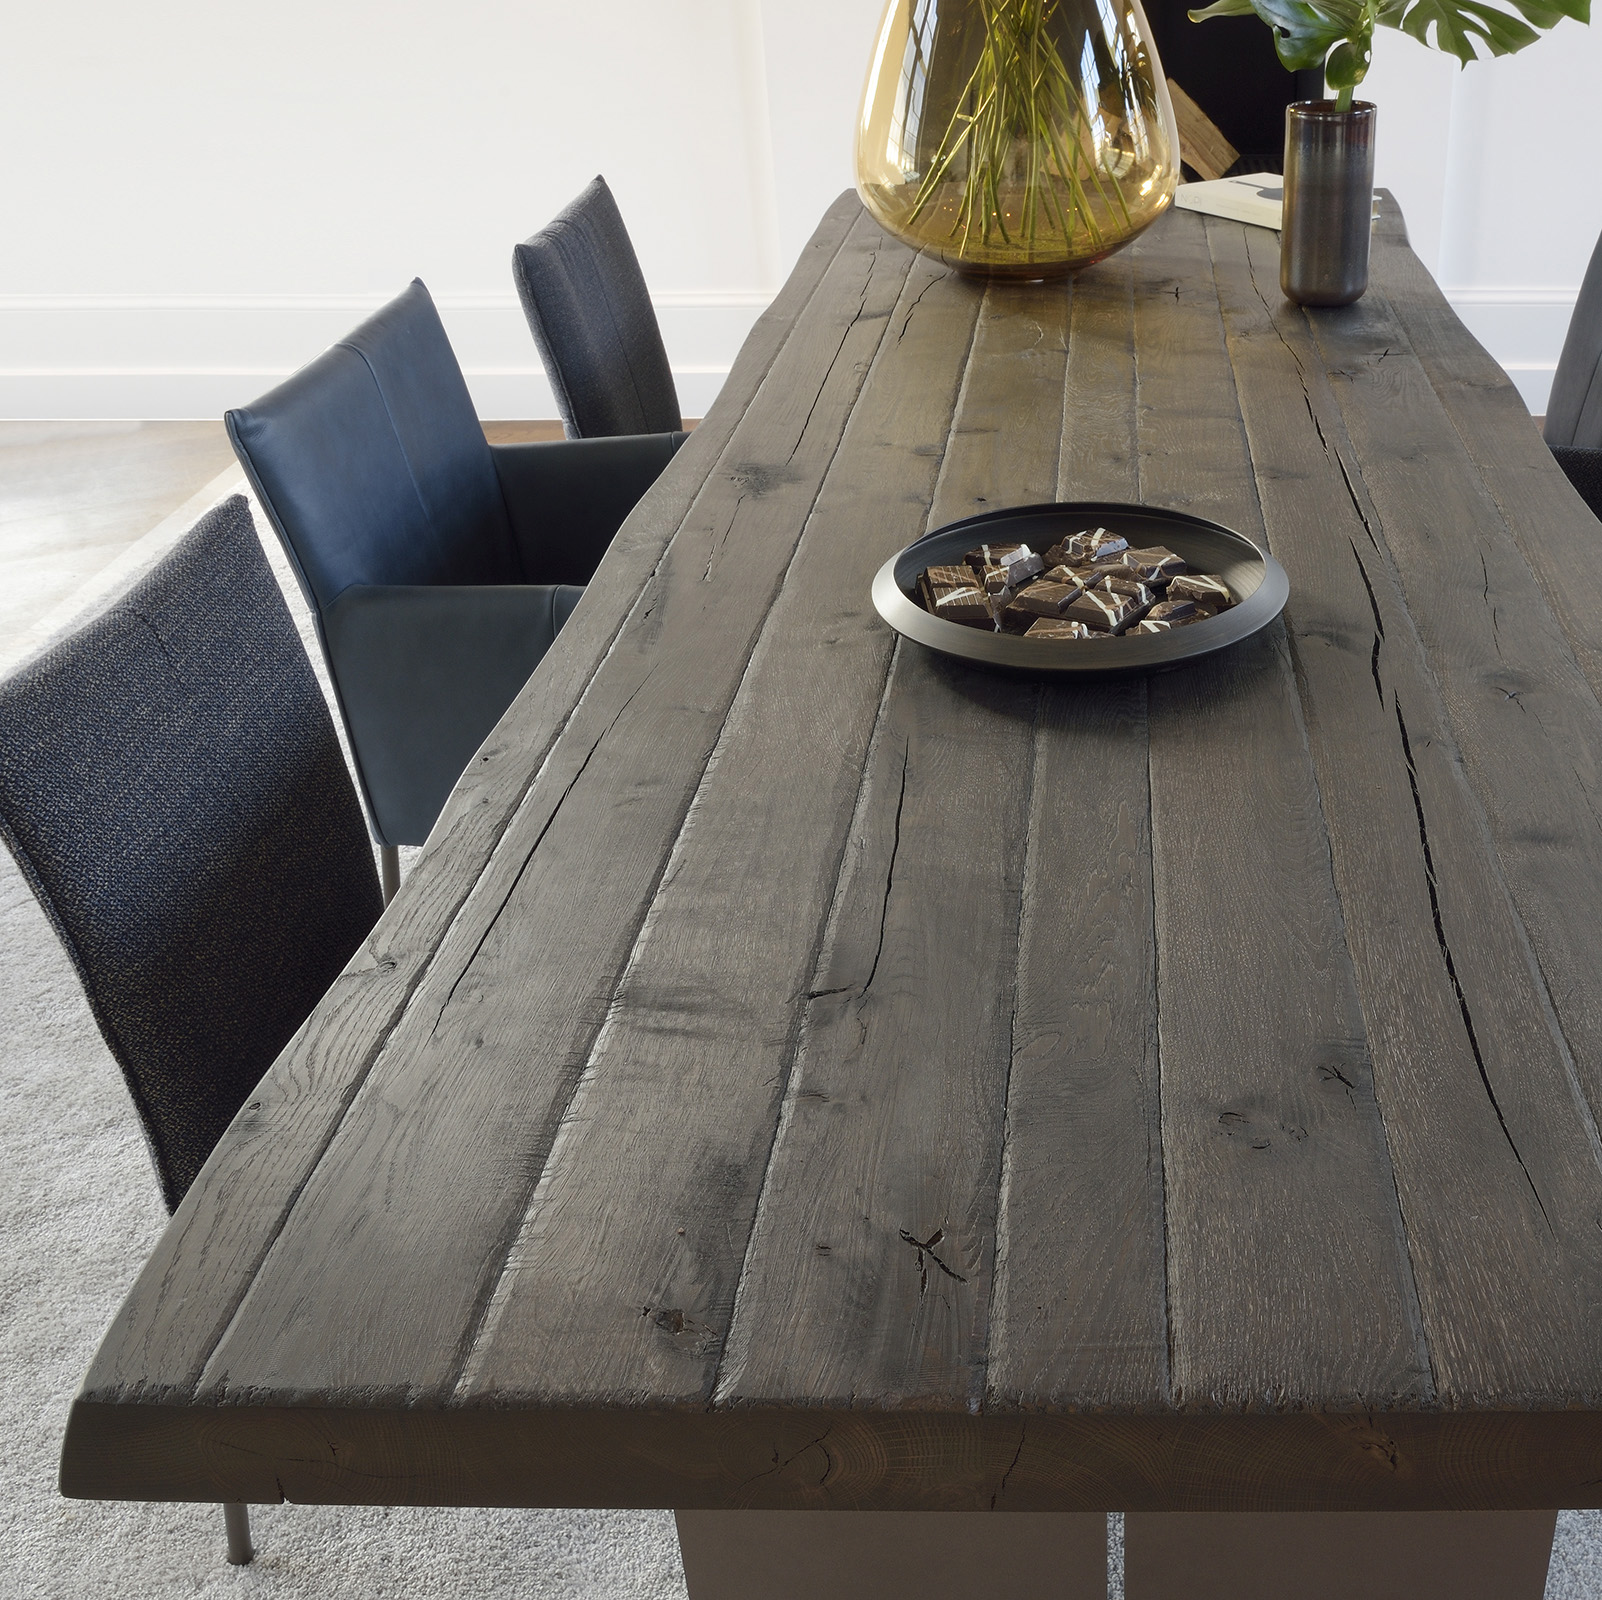 brooke-tafel-bluma-stoel-brown-by-bert-plantagie